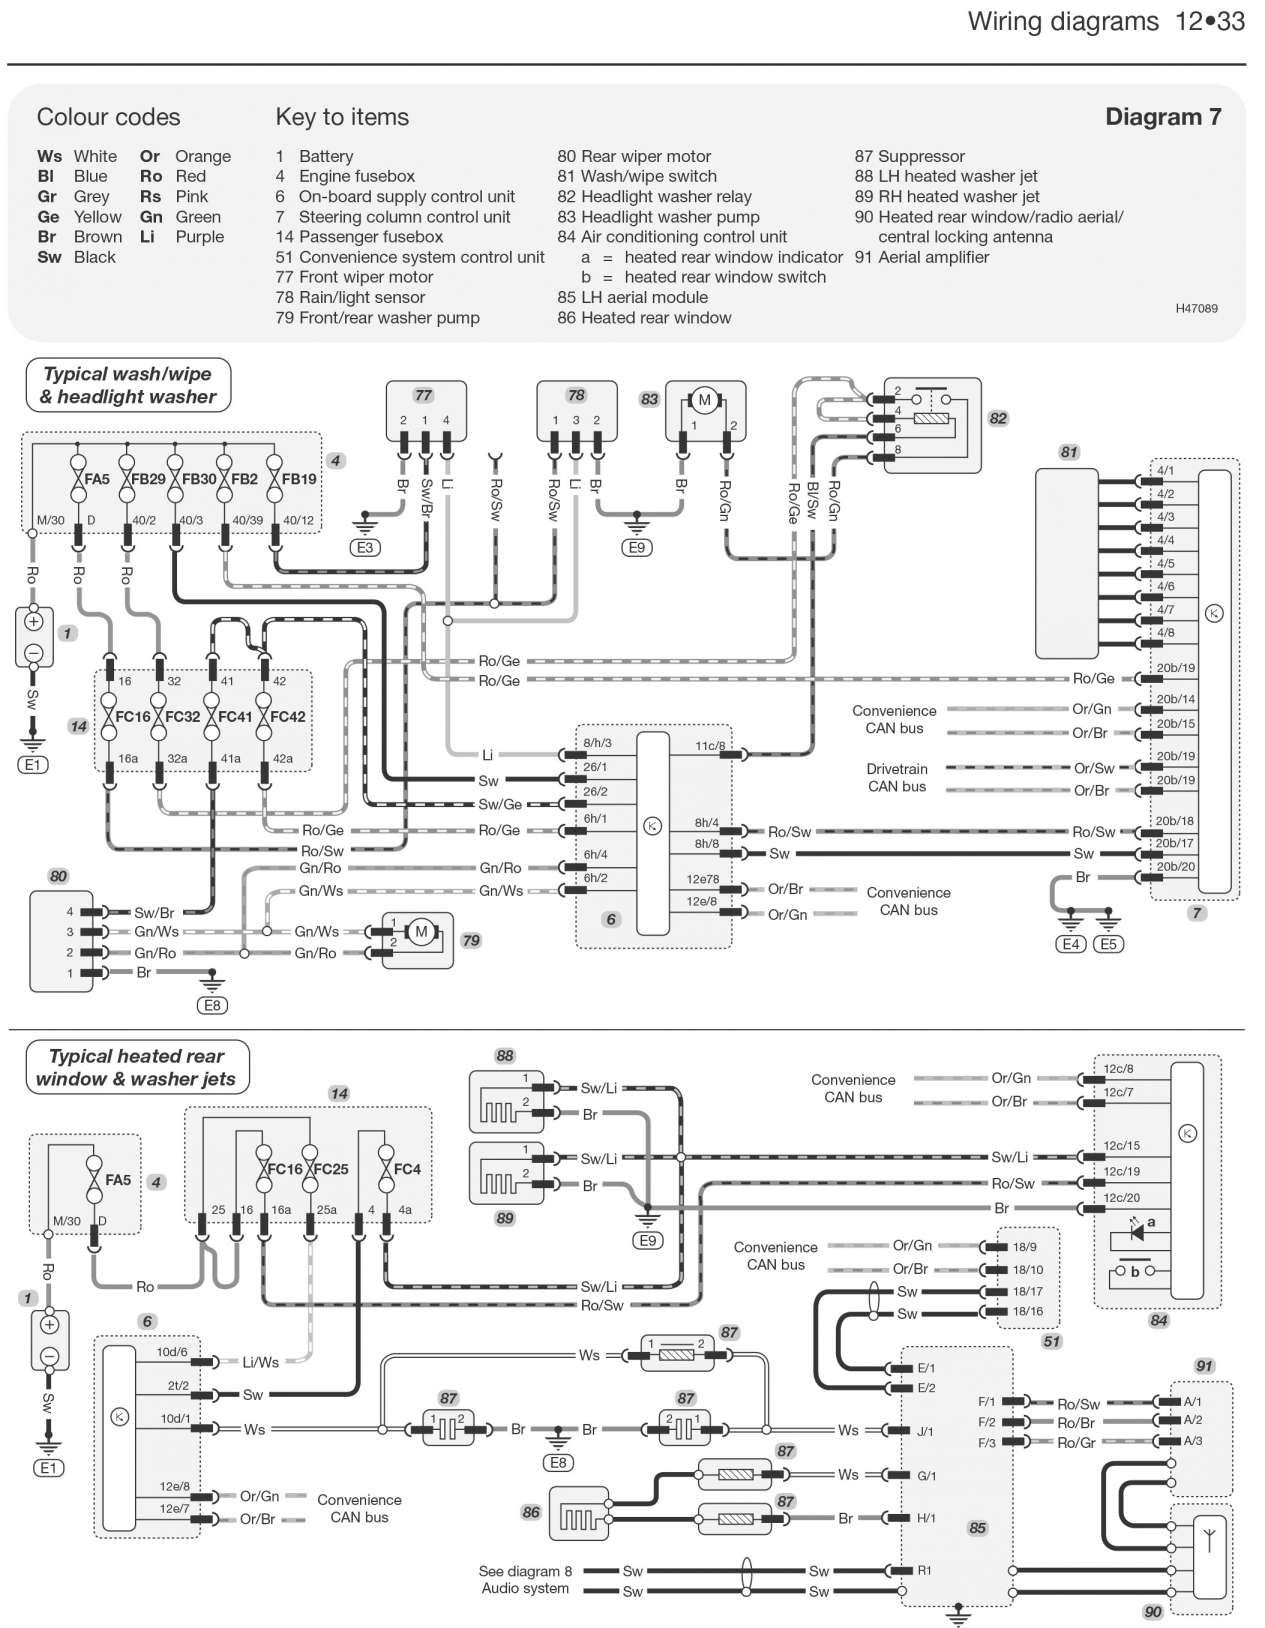 DIAGRAM] Wiring Diagram Audi A3 Espa Ol FULL Version HD Quality Espa Ol -  ABSOLUTEWIRING.FABRICELEFEVREINSTITUT.FRfabrice lefevre institut